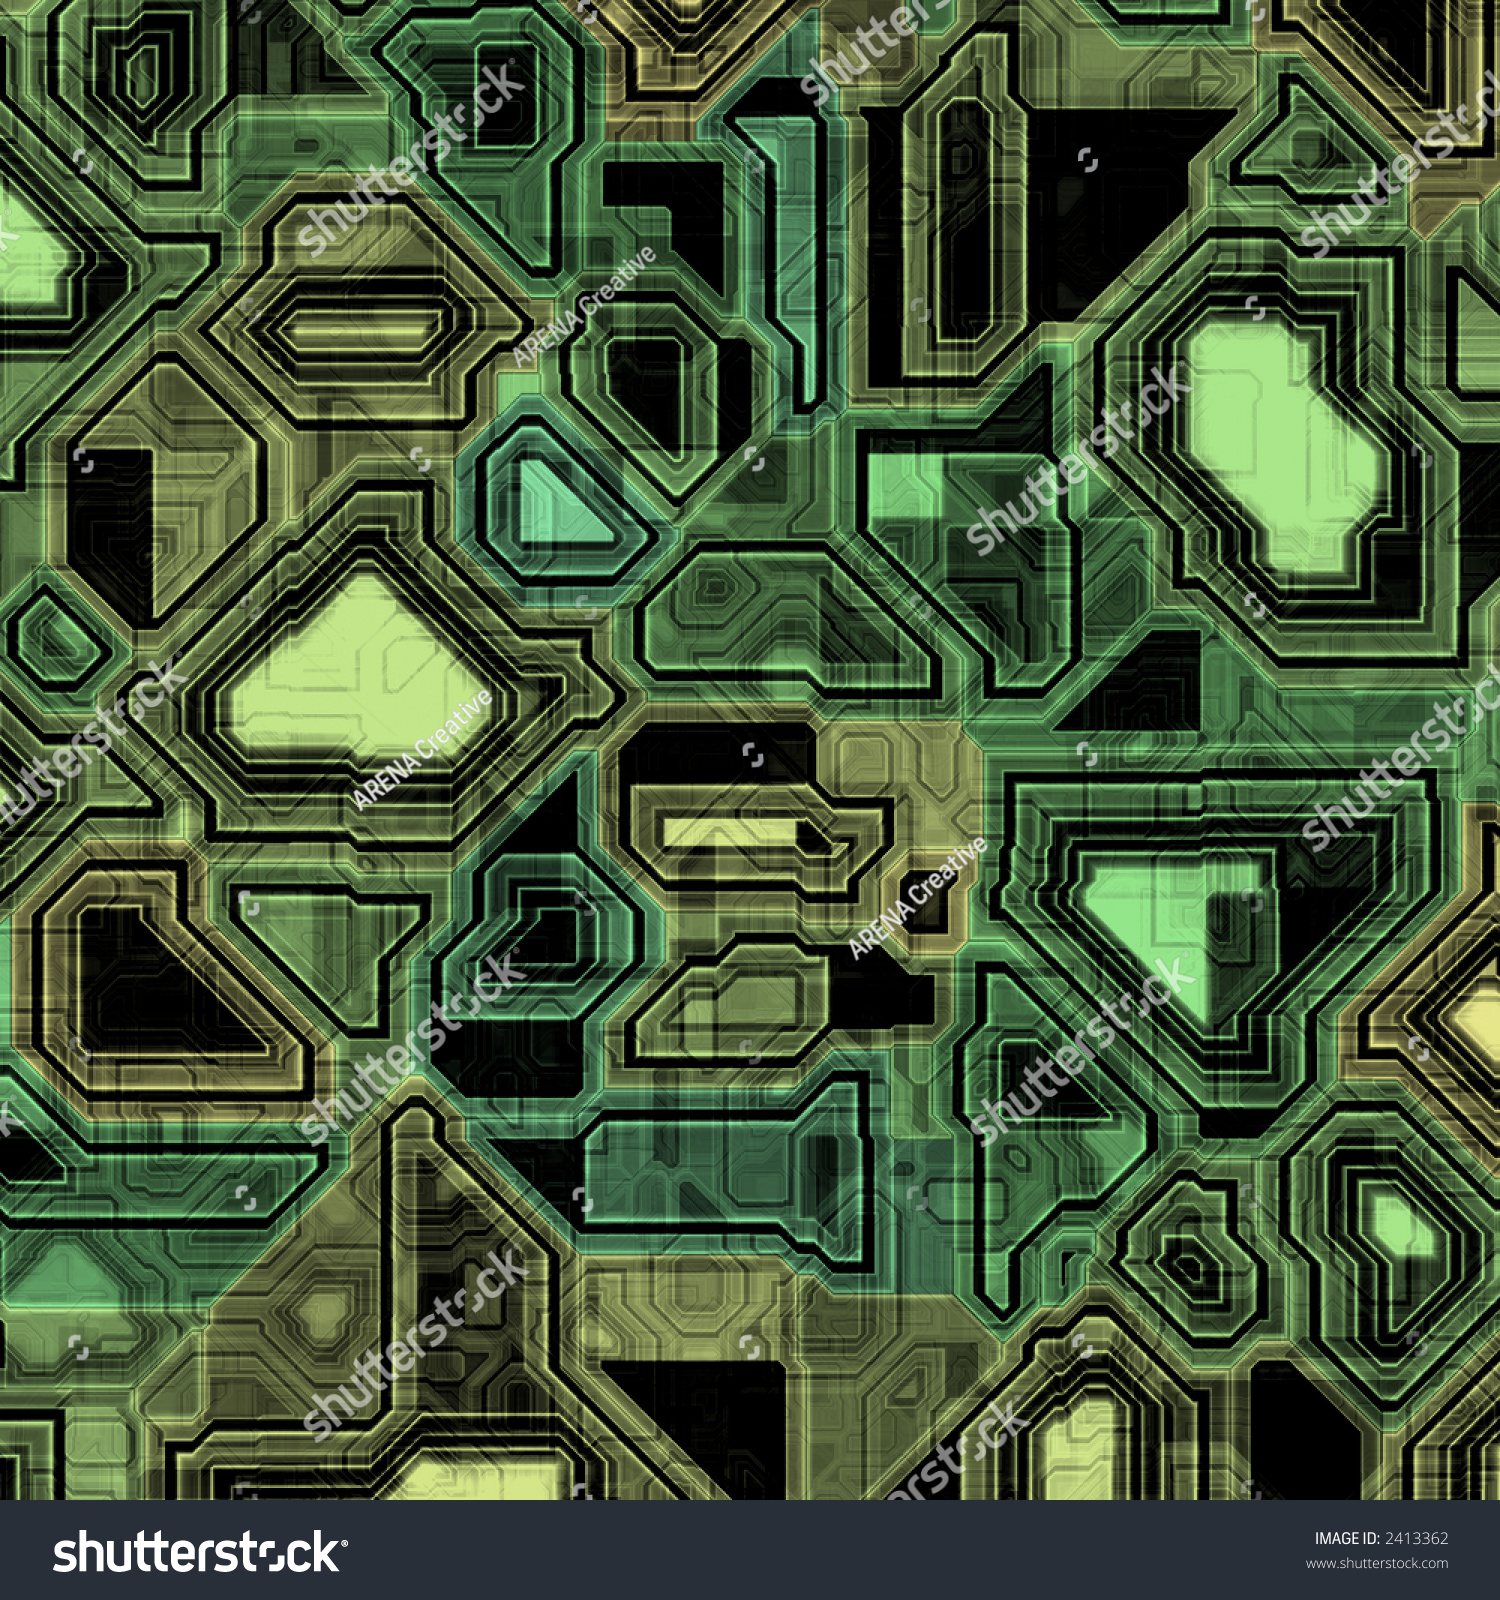 a hightech circuit board background it tiles seamlessly